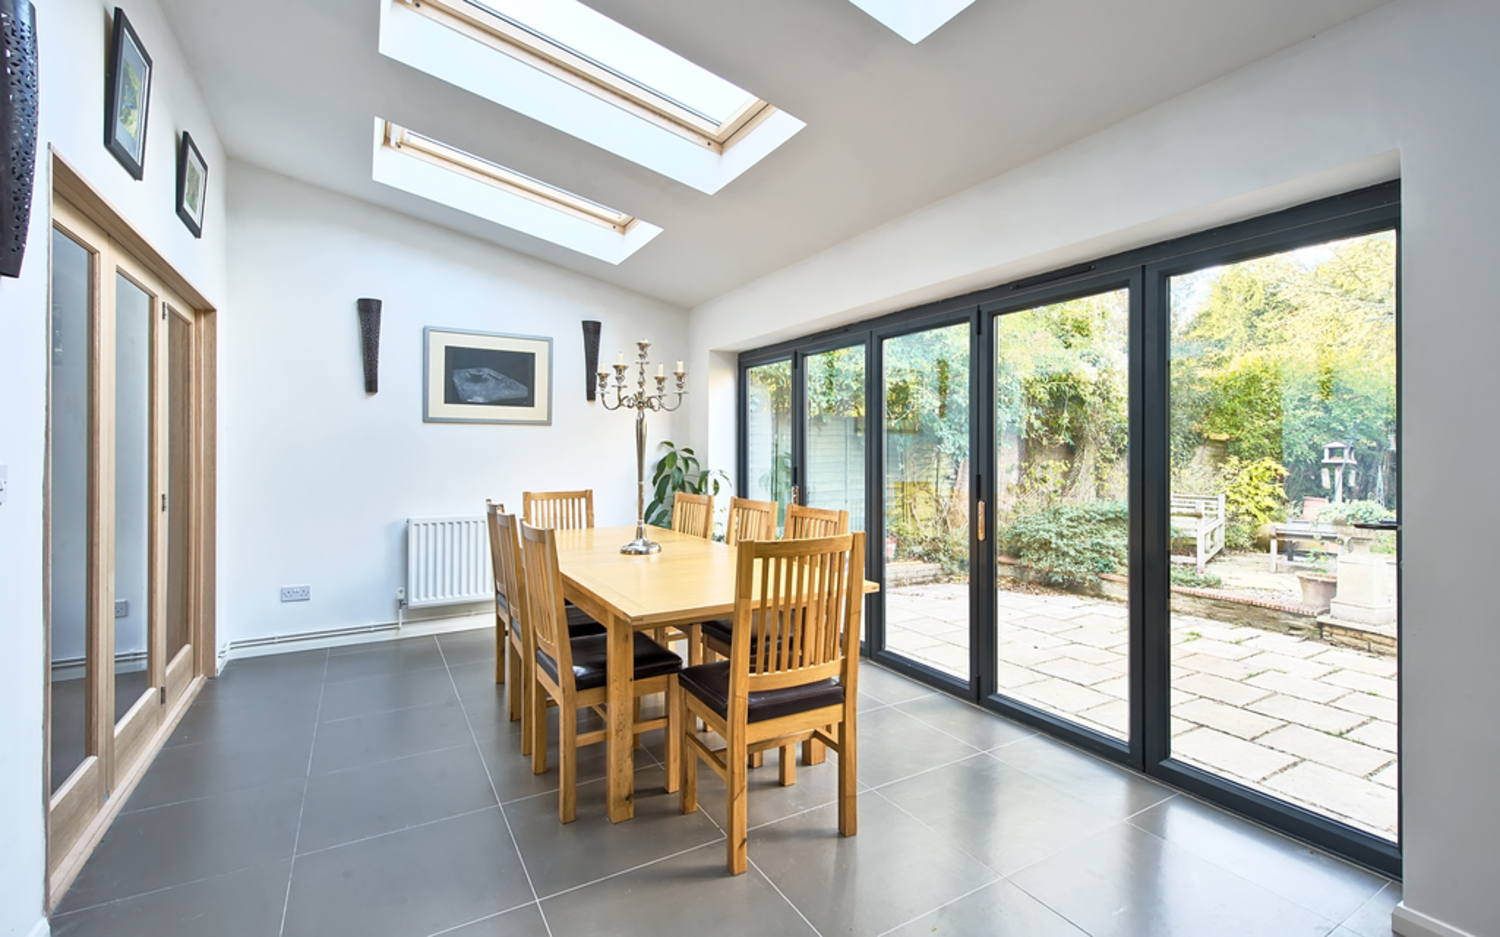 Planning your house extension